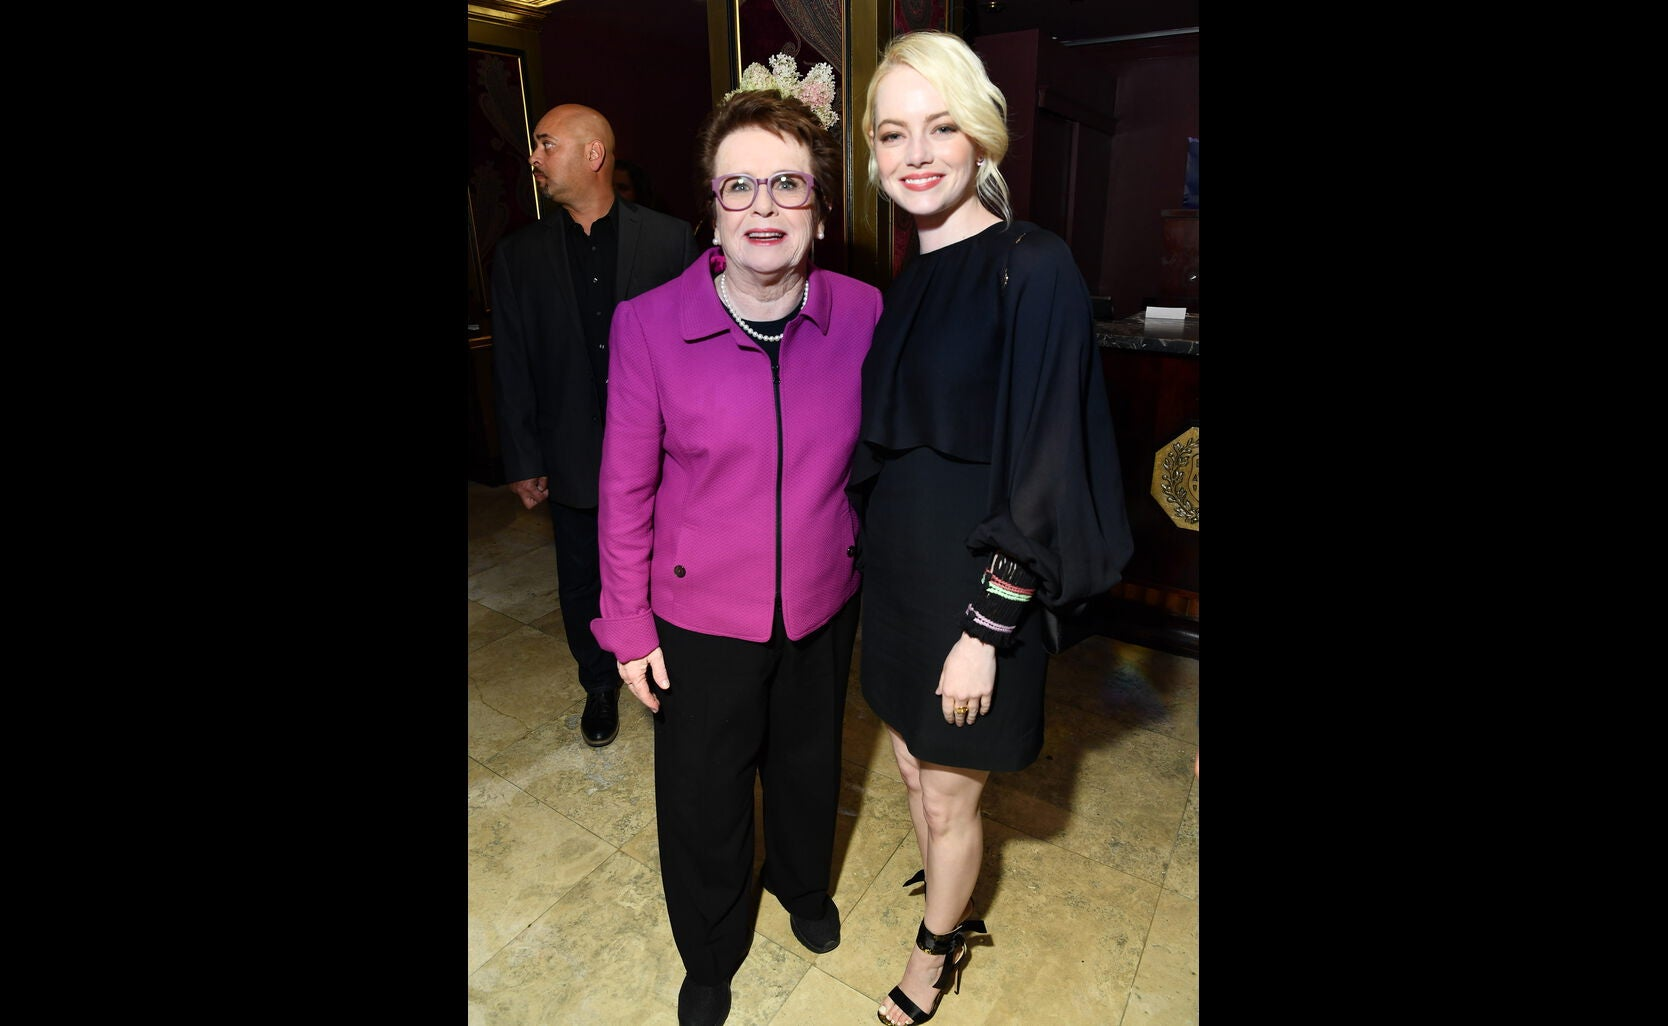 Billy Jean King and Emma Stone